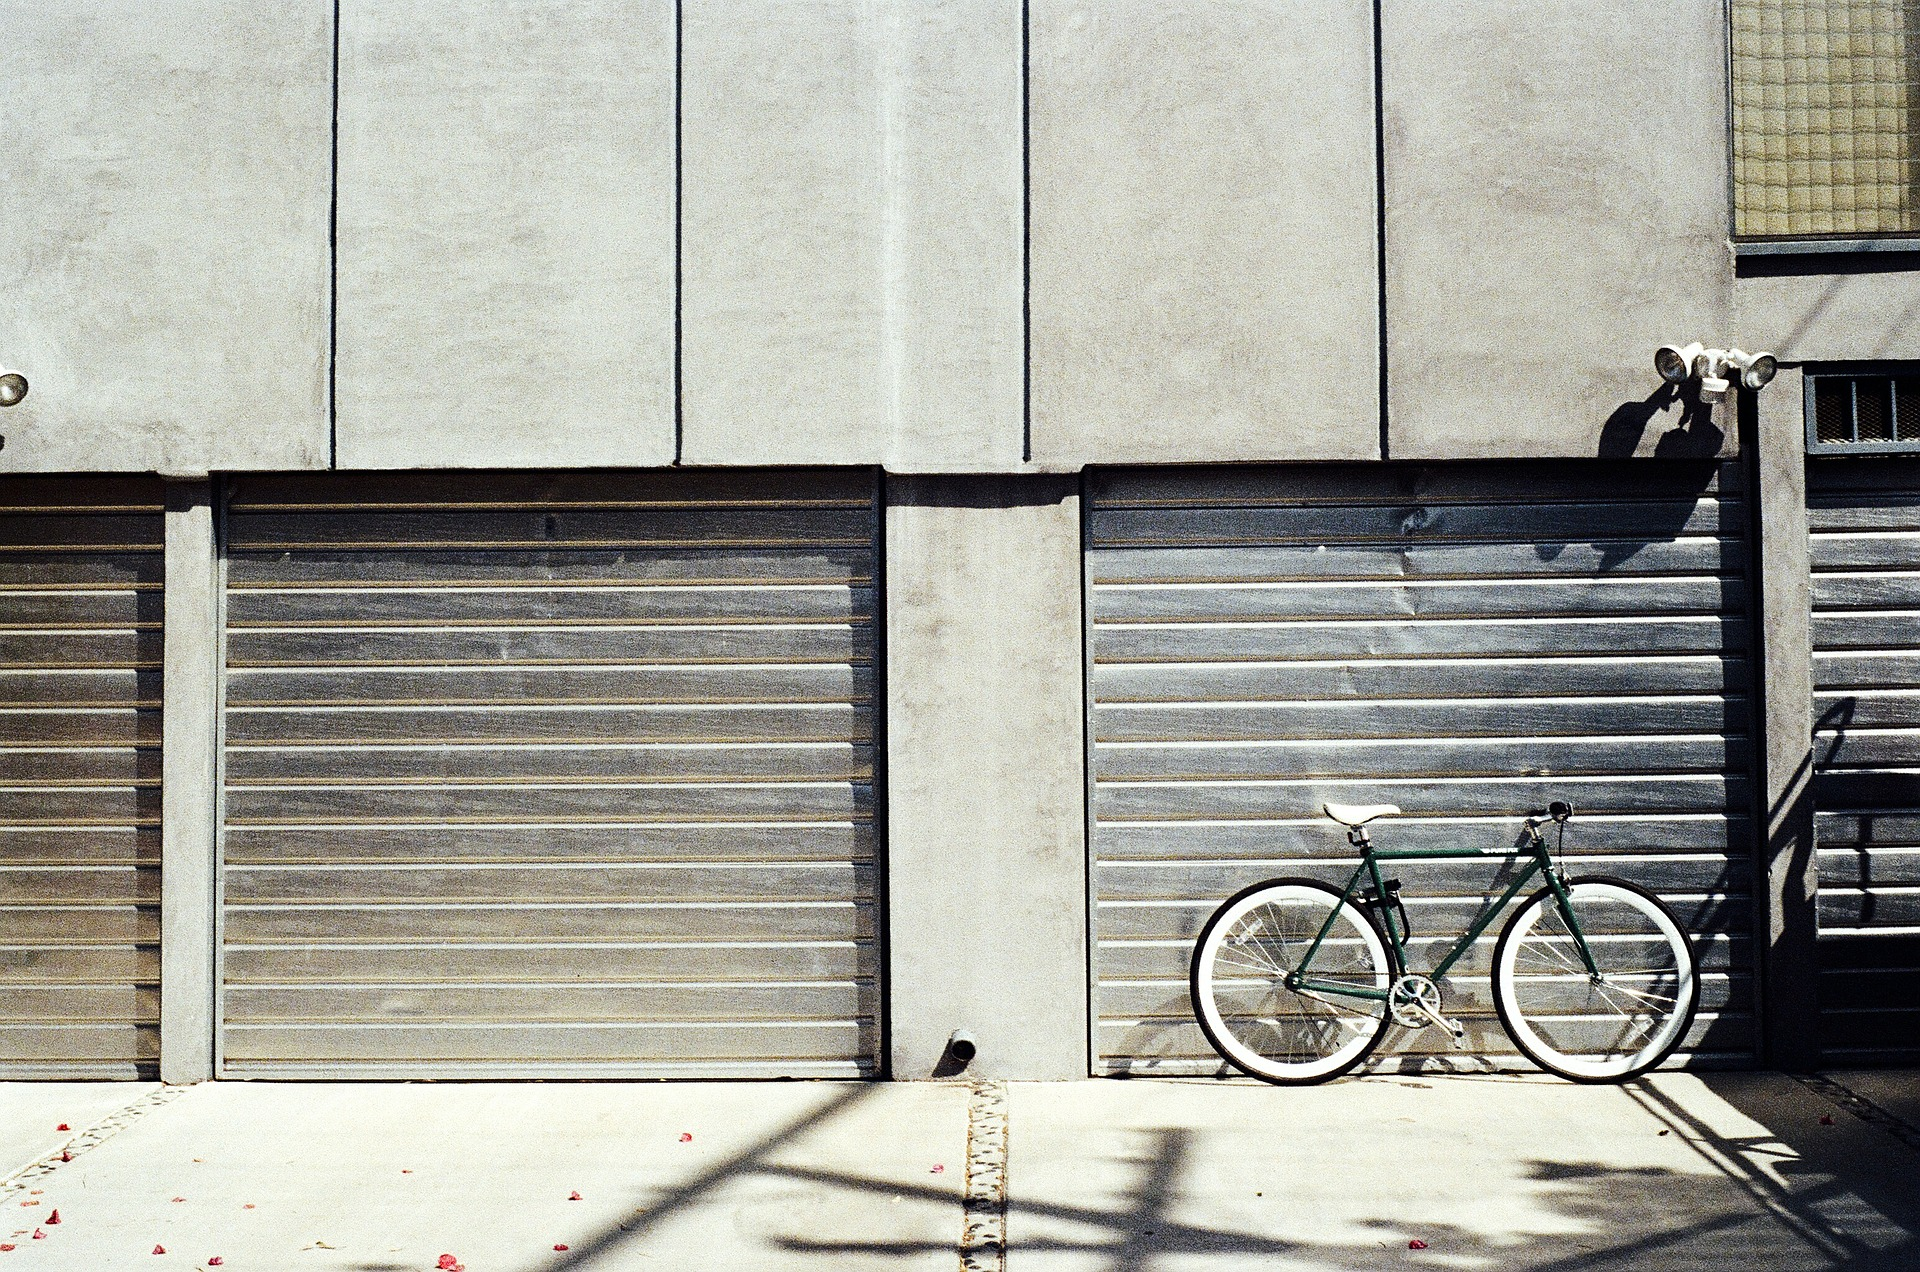 bicycle-405883_1920